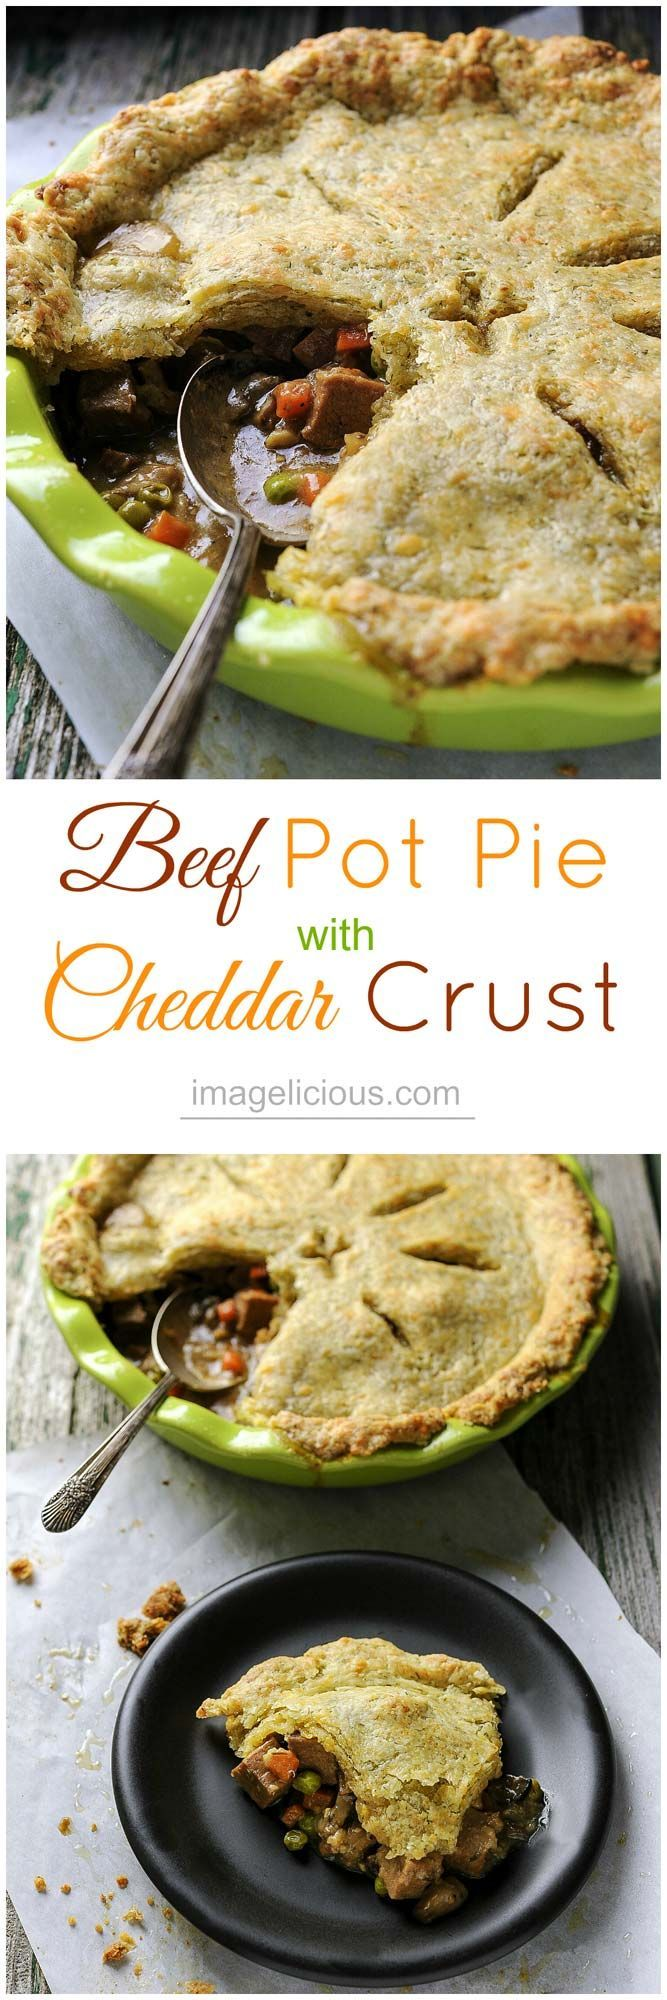 Beef Pot Pie with Cheddar Crust - Perfect for leftover roast. Soft cubes of meat, melting into silky smooth gravy, studded with bright carrots and peas, mixed with earthy mushrooms, and occasional clove of sweet soft garlic, covered in flakey cheddar pastry with a hint of fresh dill